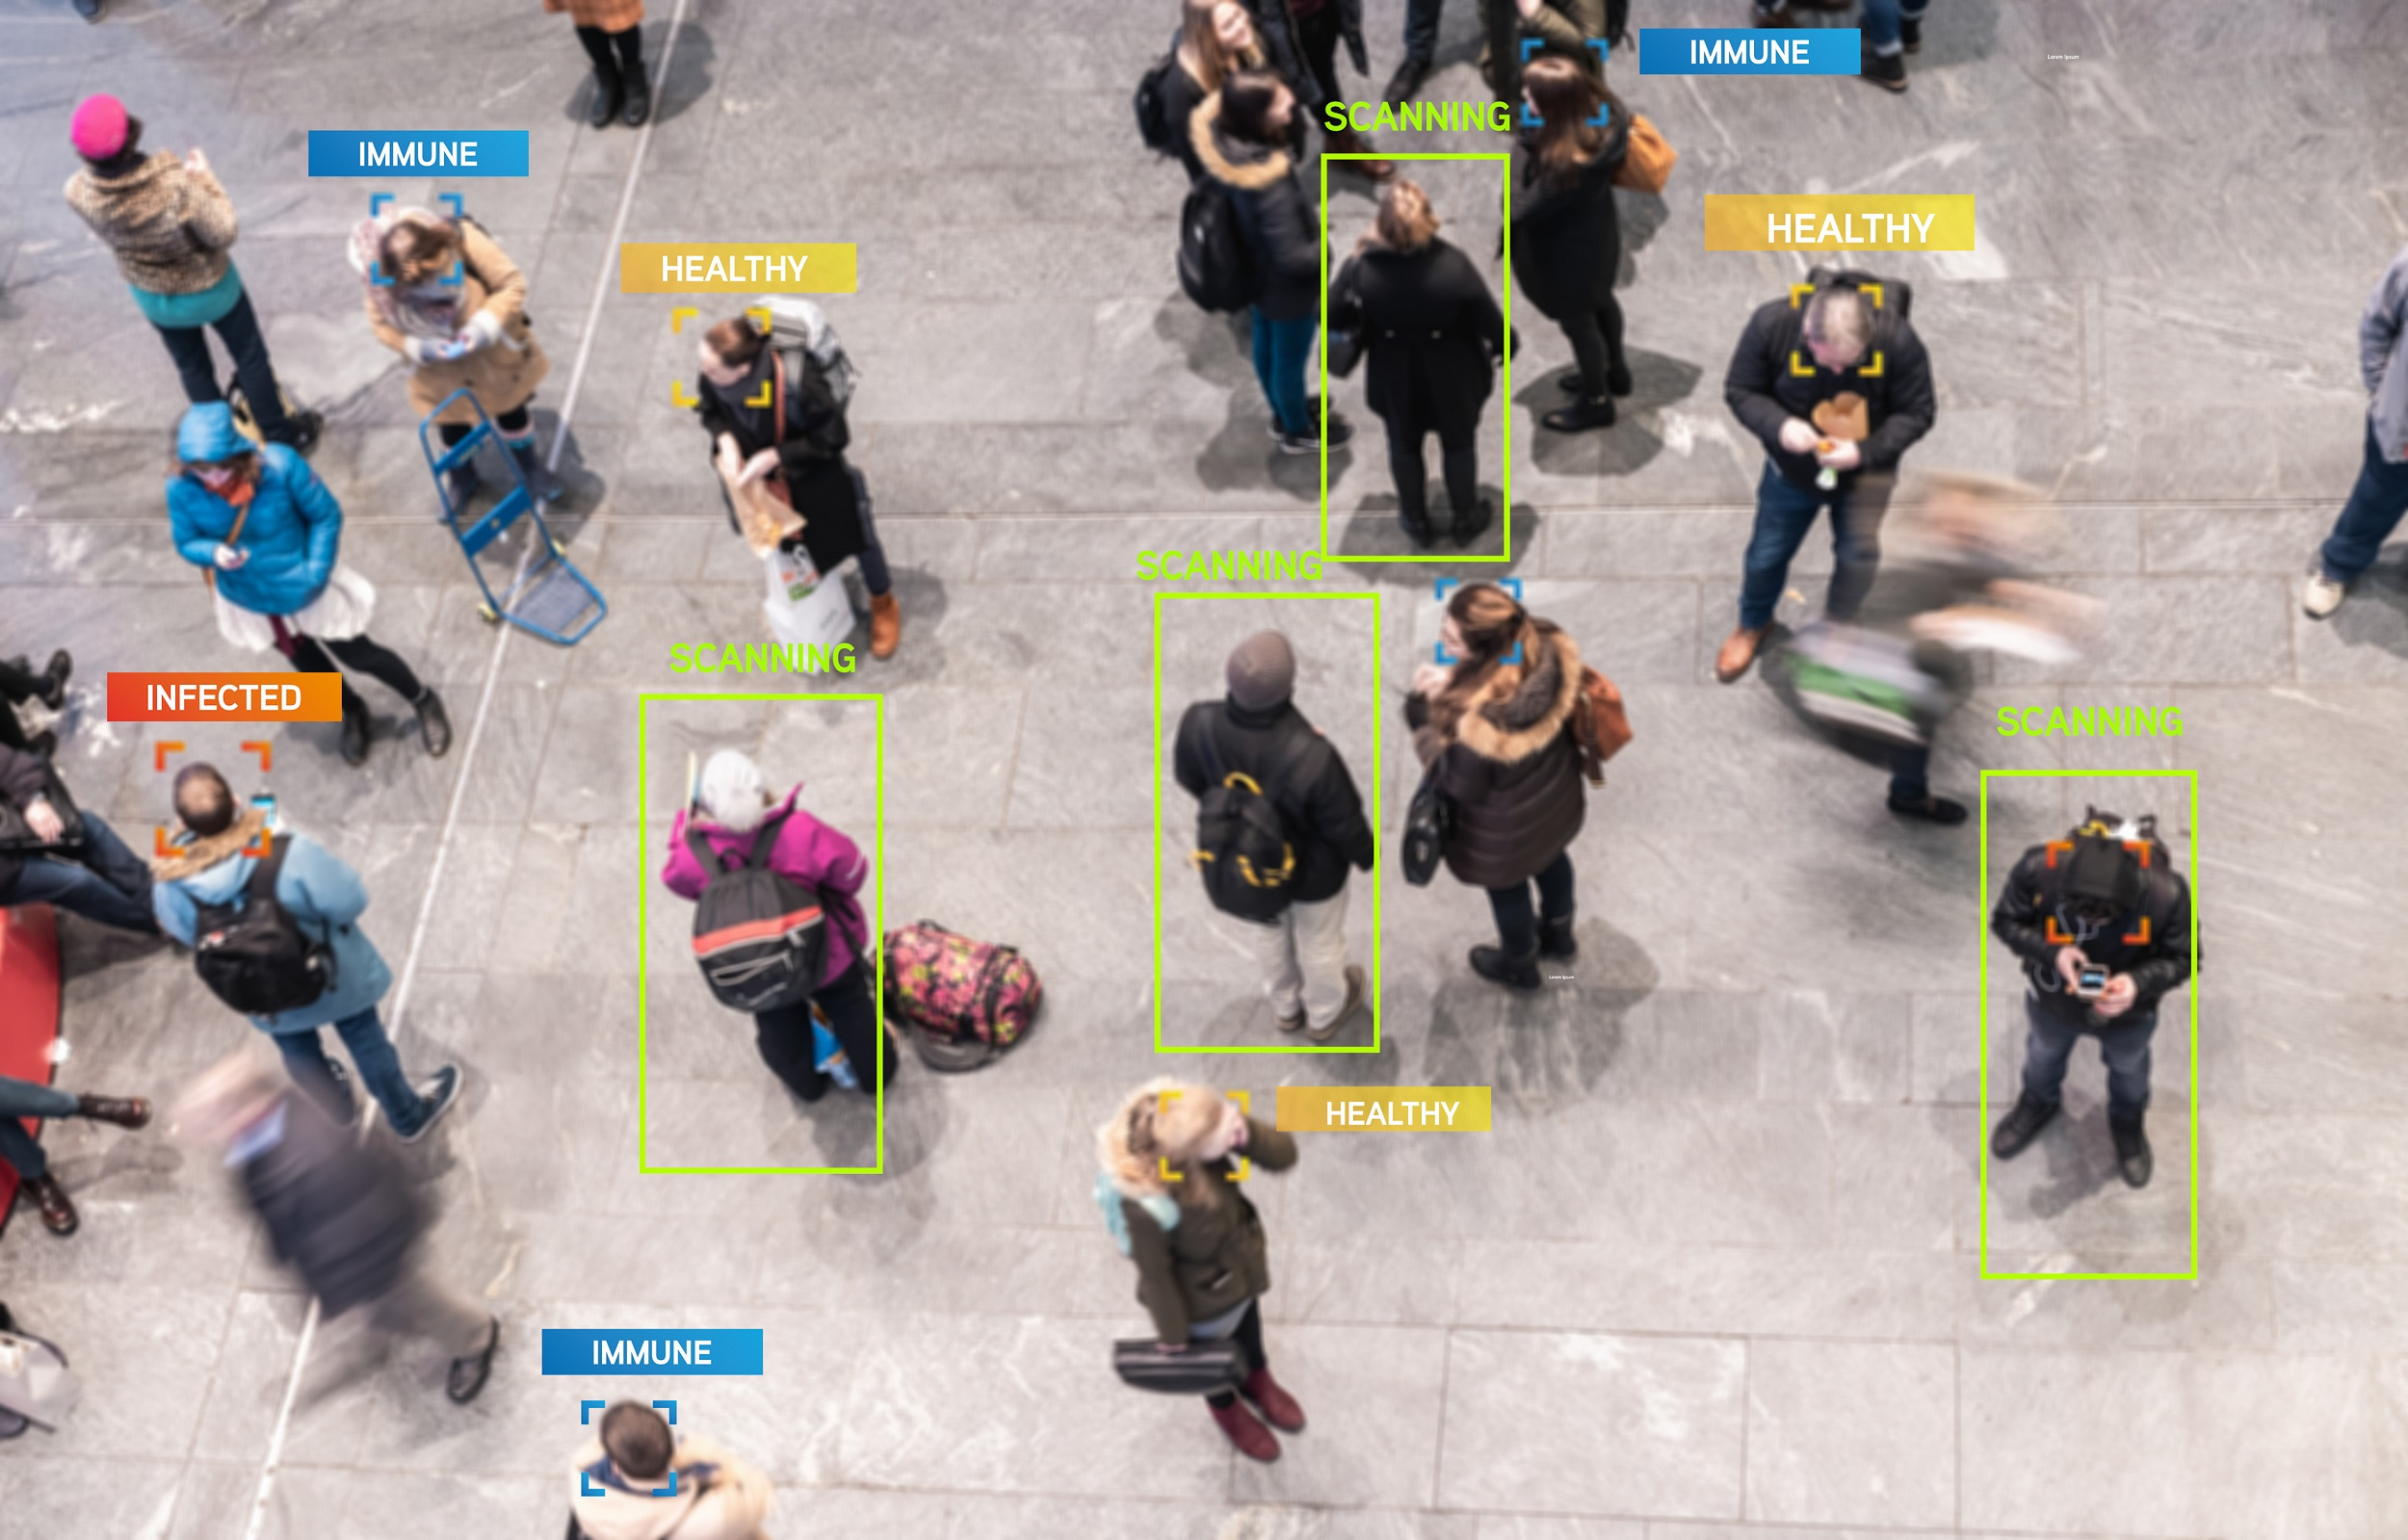 Aerial view of people who have been virtually tagged by an app scan.